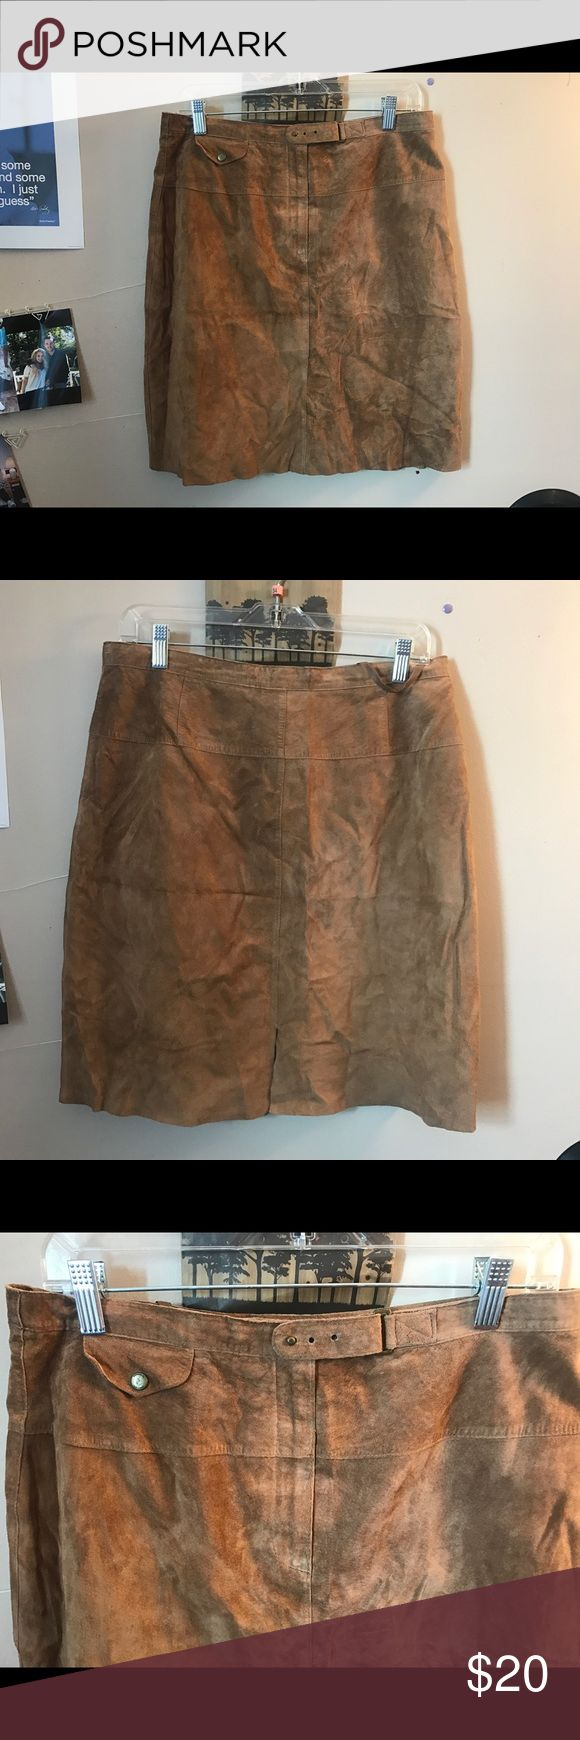 RALPH LAUREN 100% BROWN LEATHER  SKIRT Super cute brown 100% leather Ralph Lauren skirt. Little slit in the back and buckle in front to adjust the waist Lauren Ralph Lauren Skirts Midi